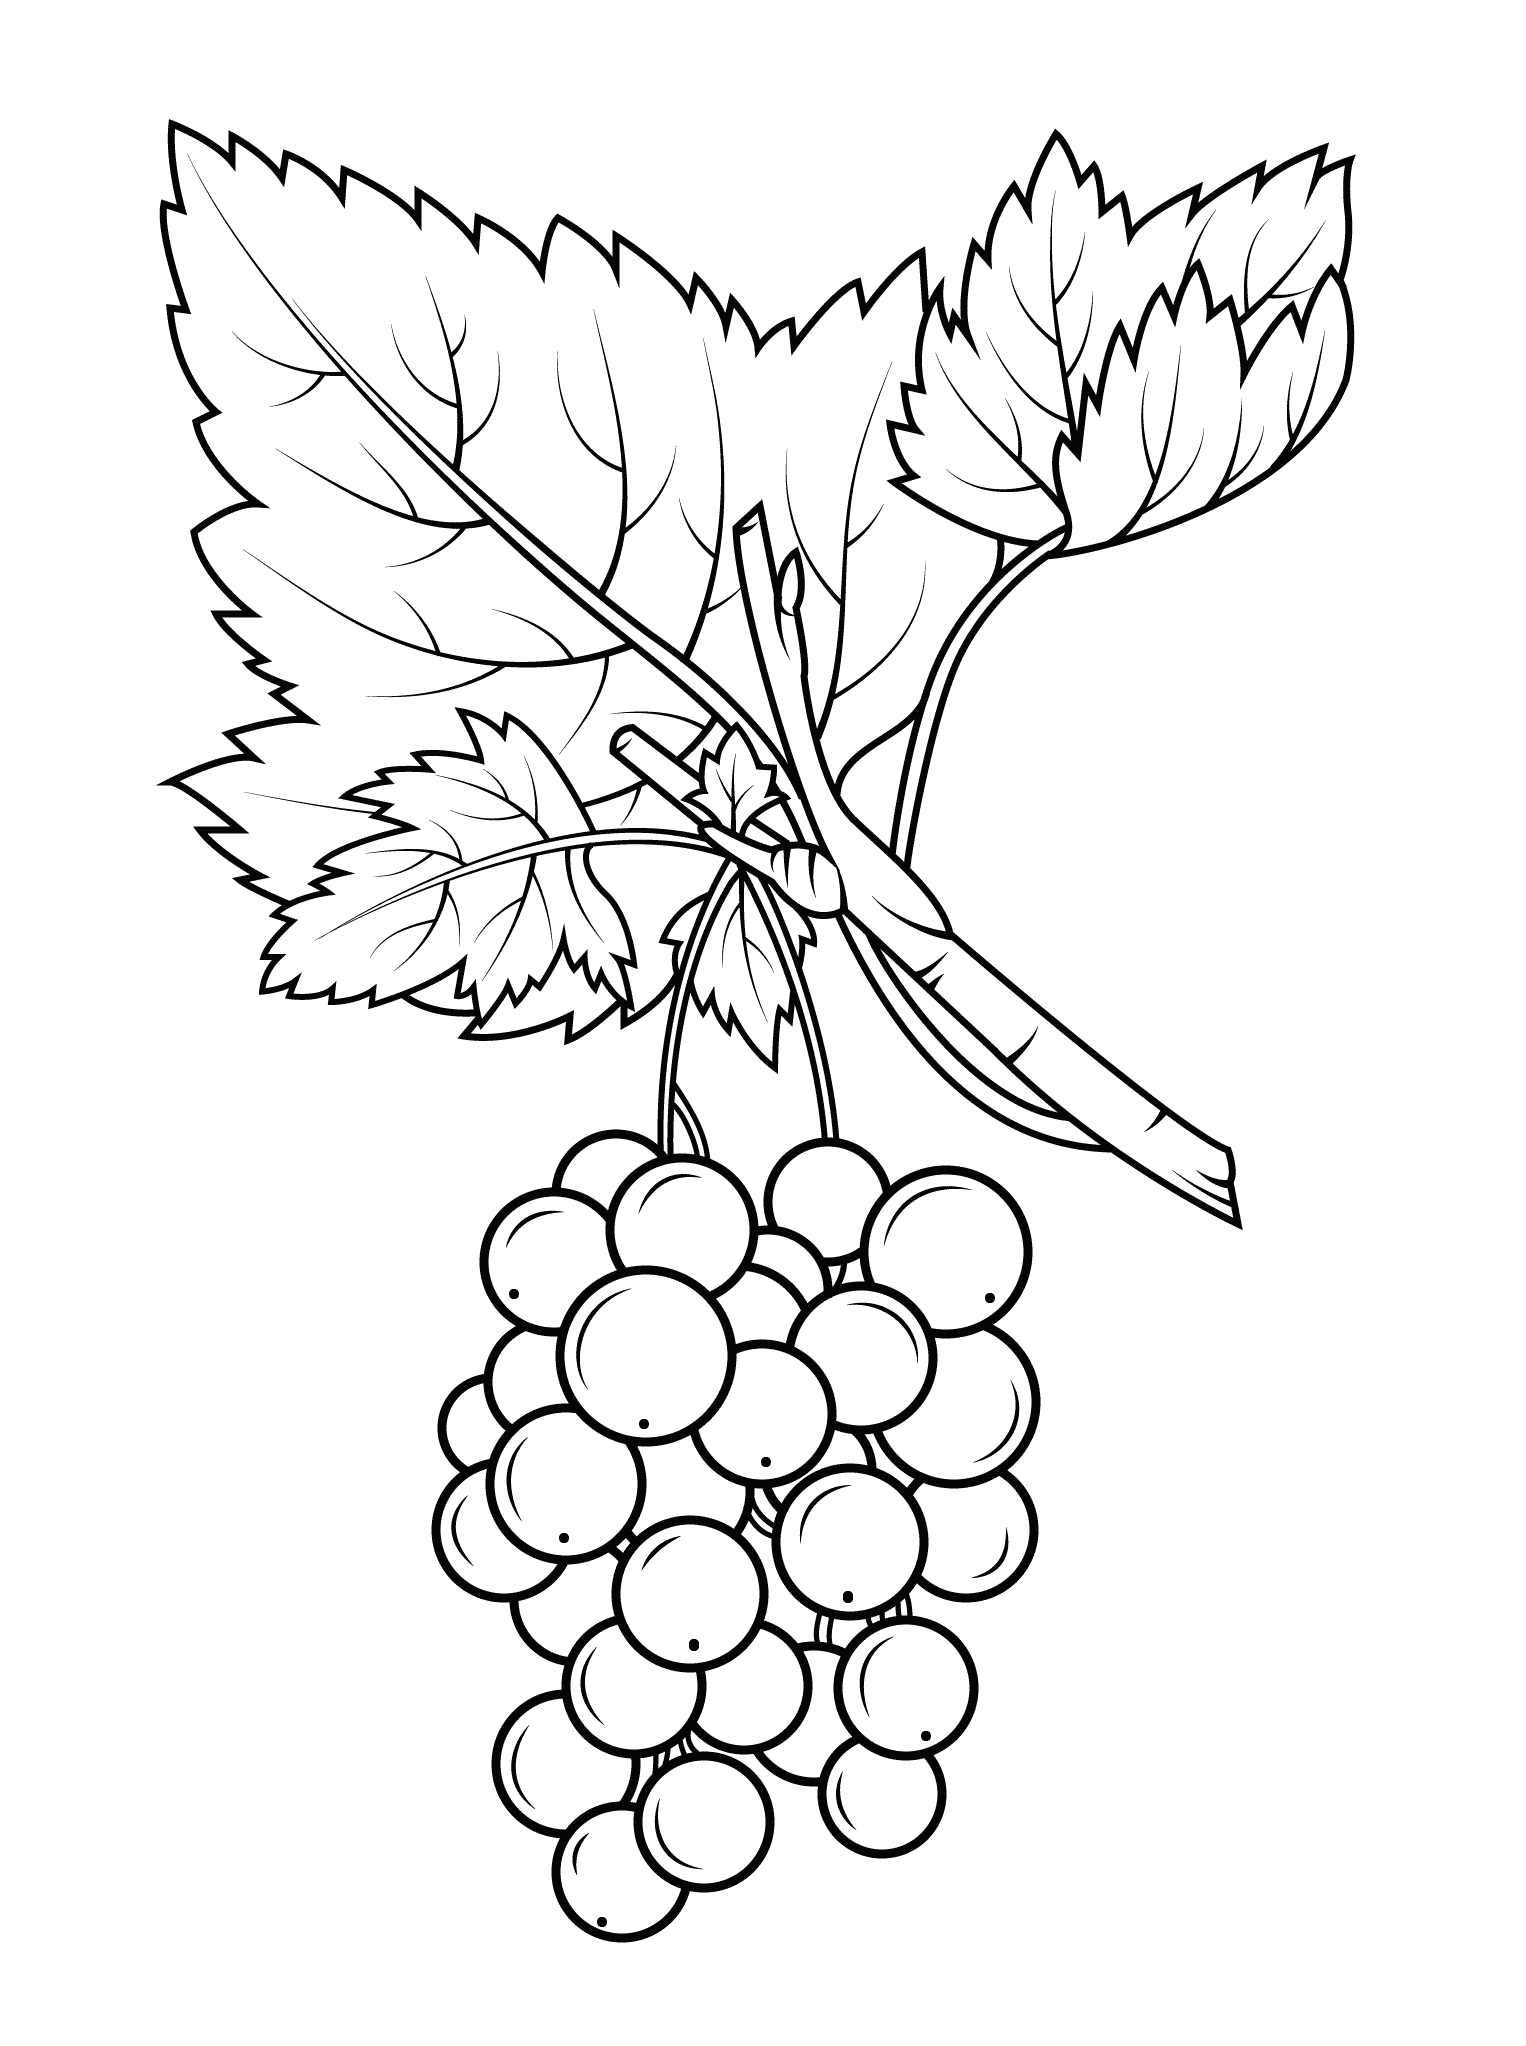 grapes coloring pages best coloring pages for kids